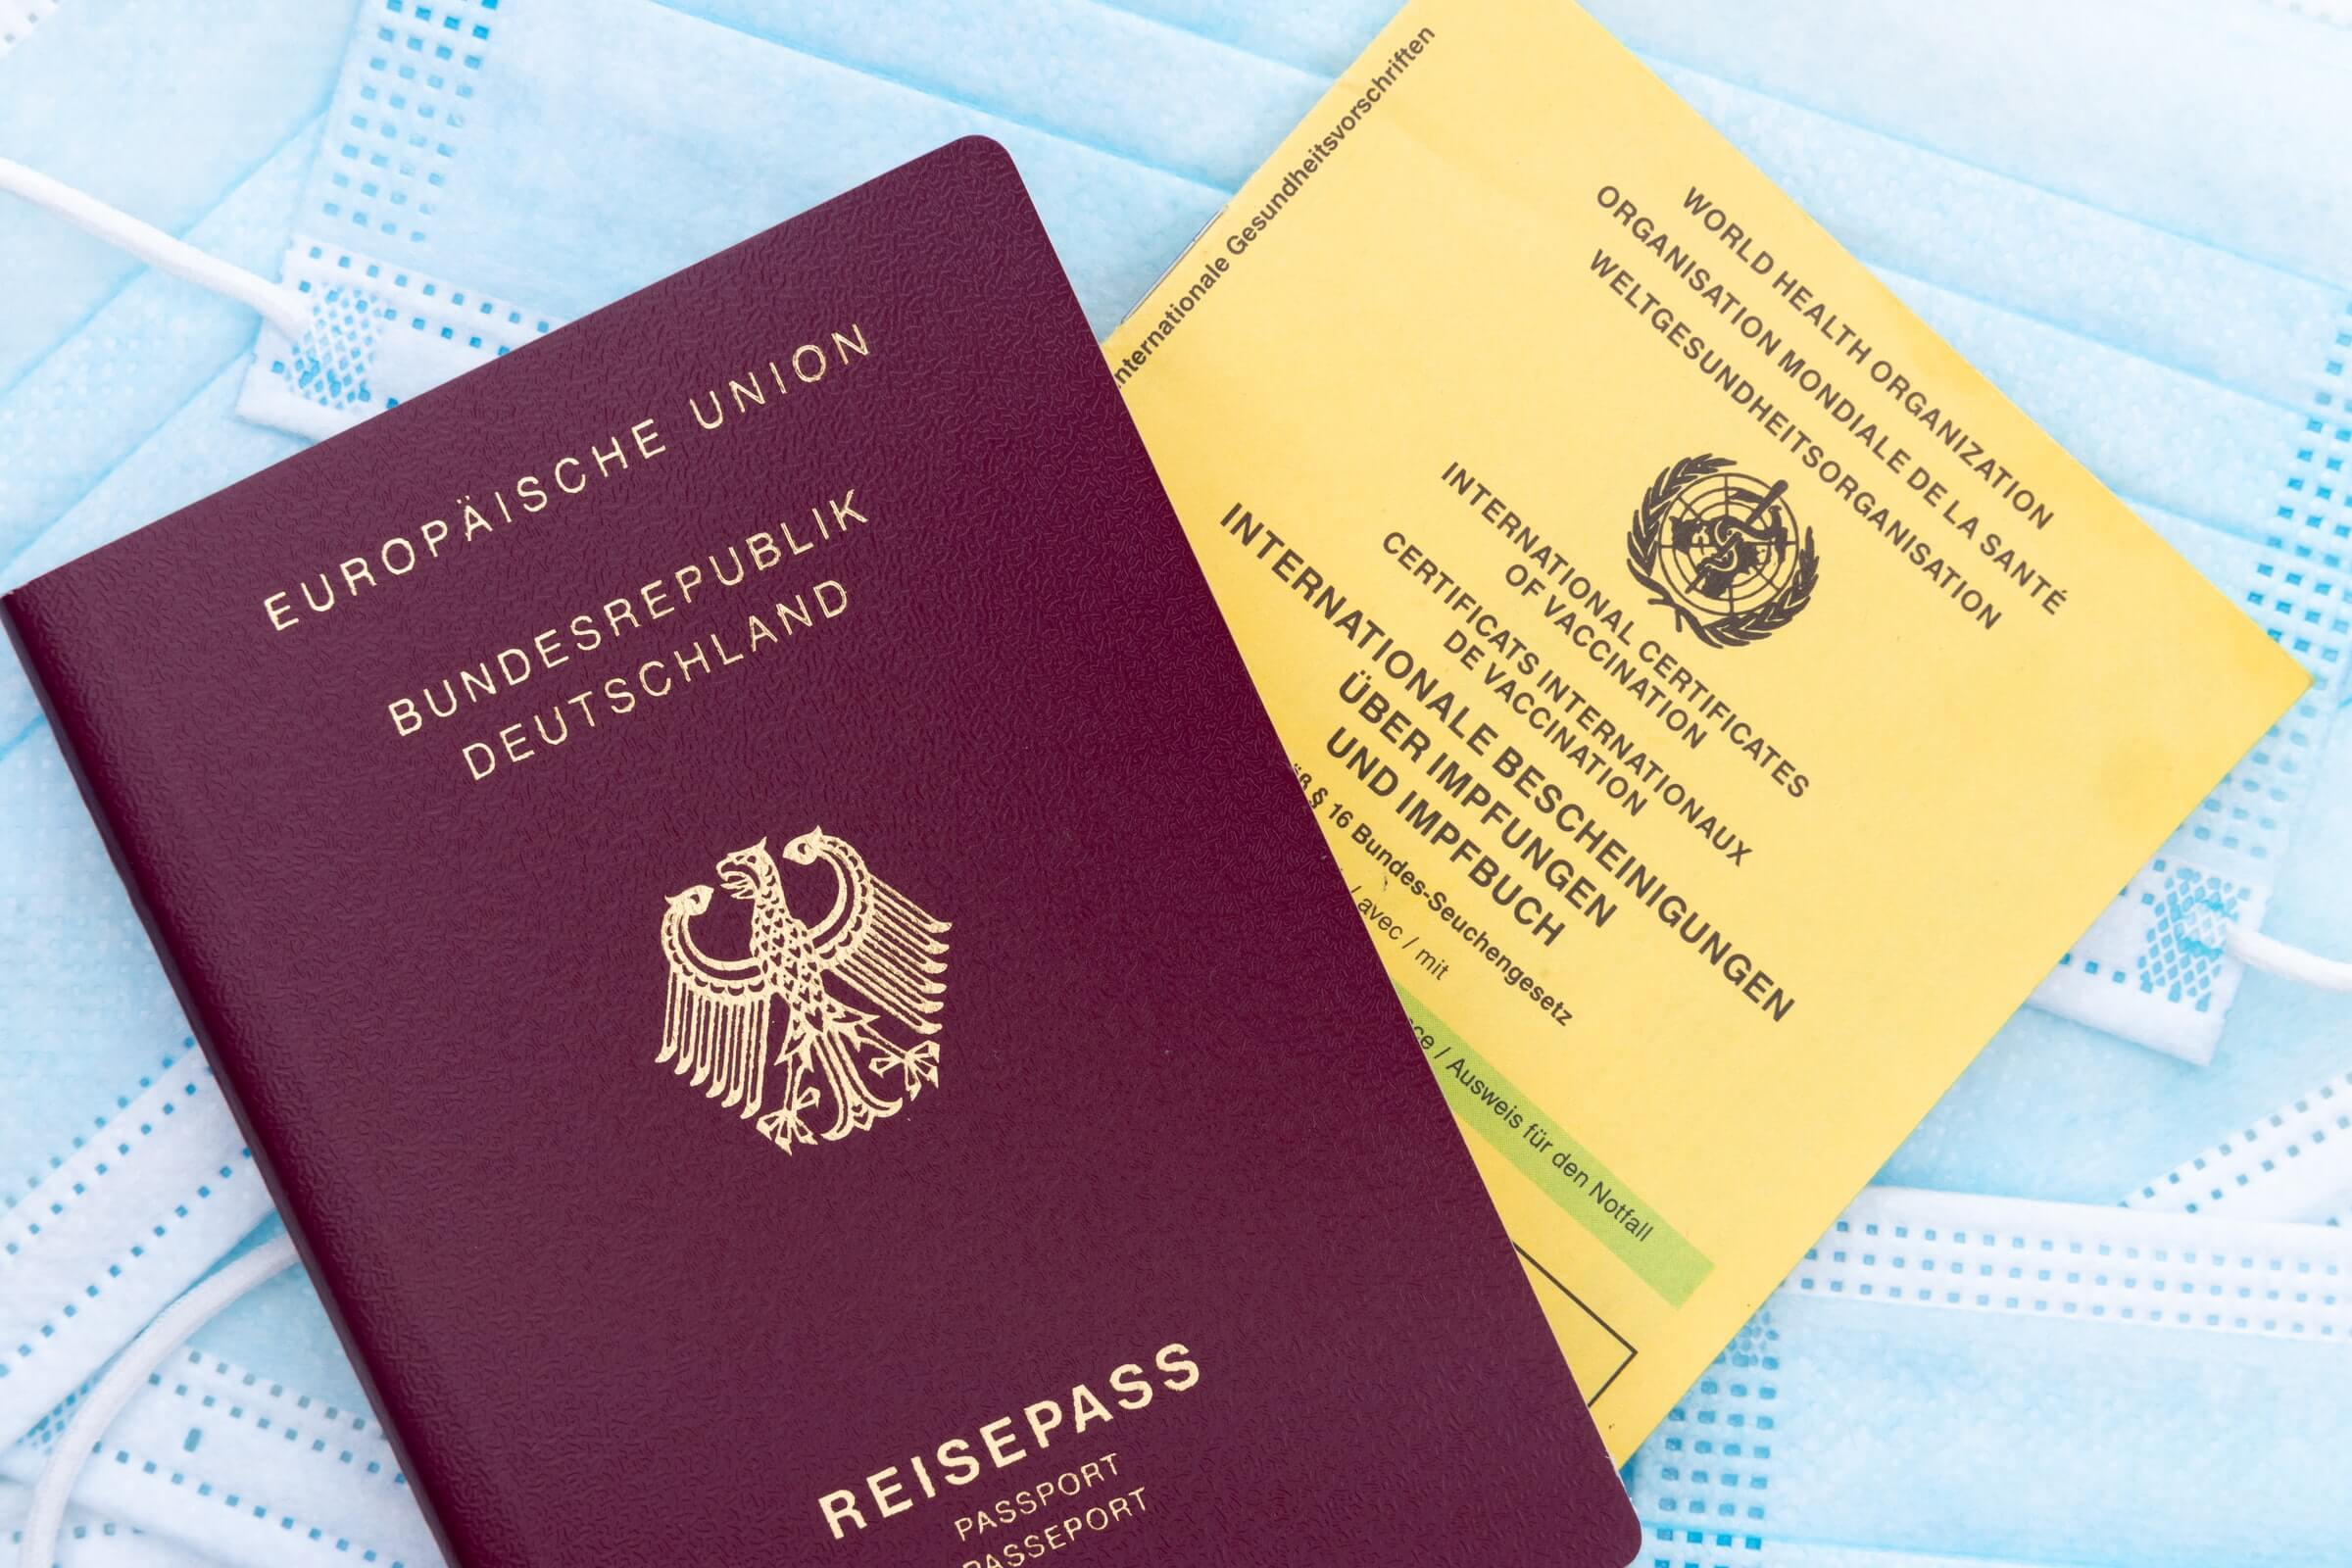 When will digital COVID passports be ready and in use?